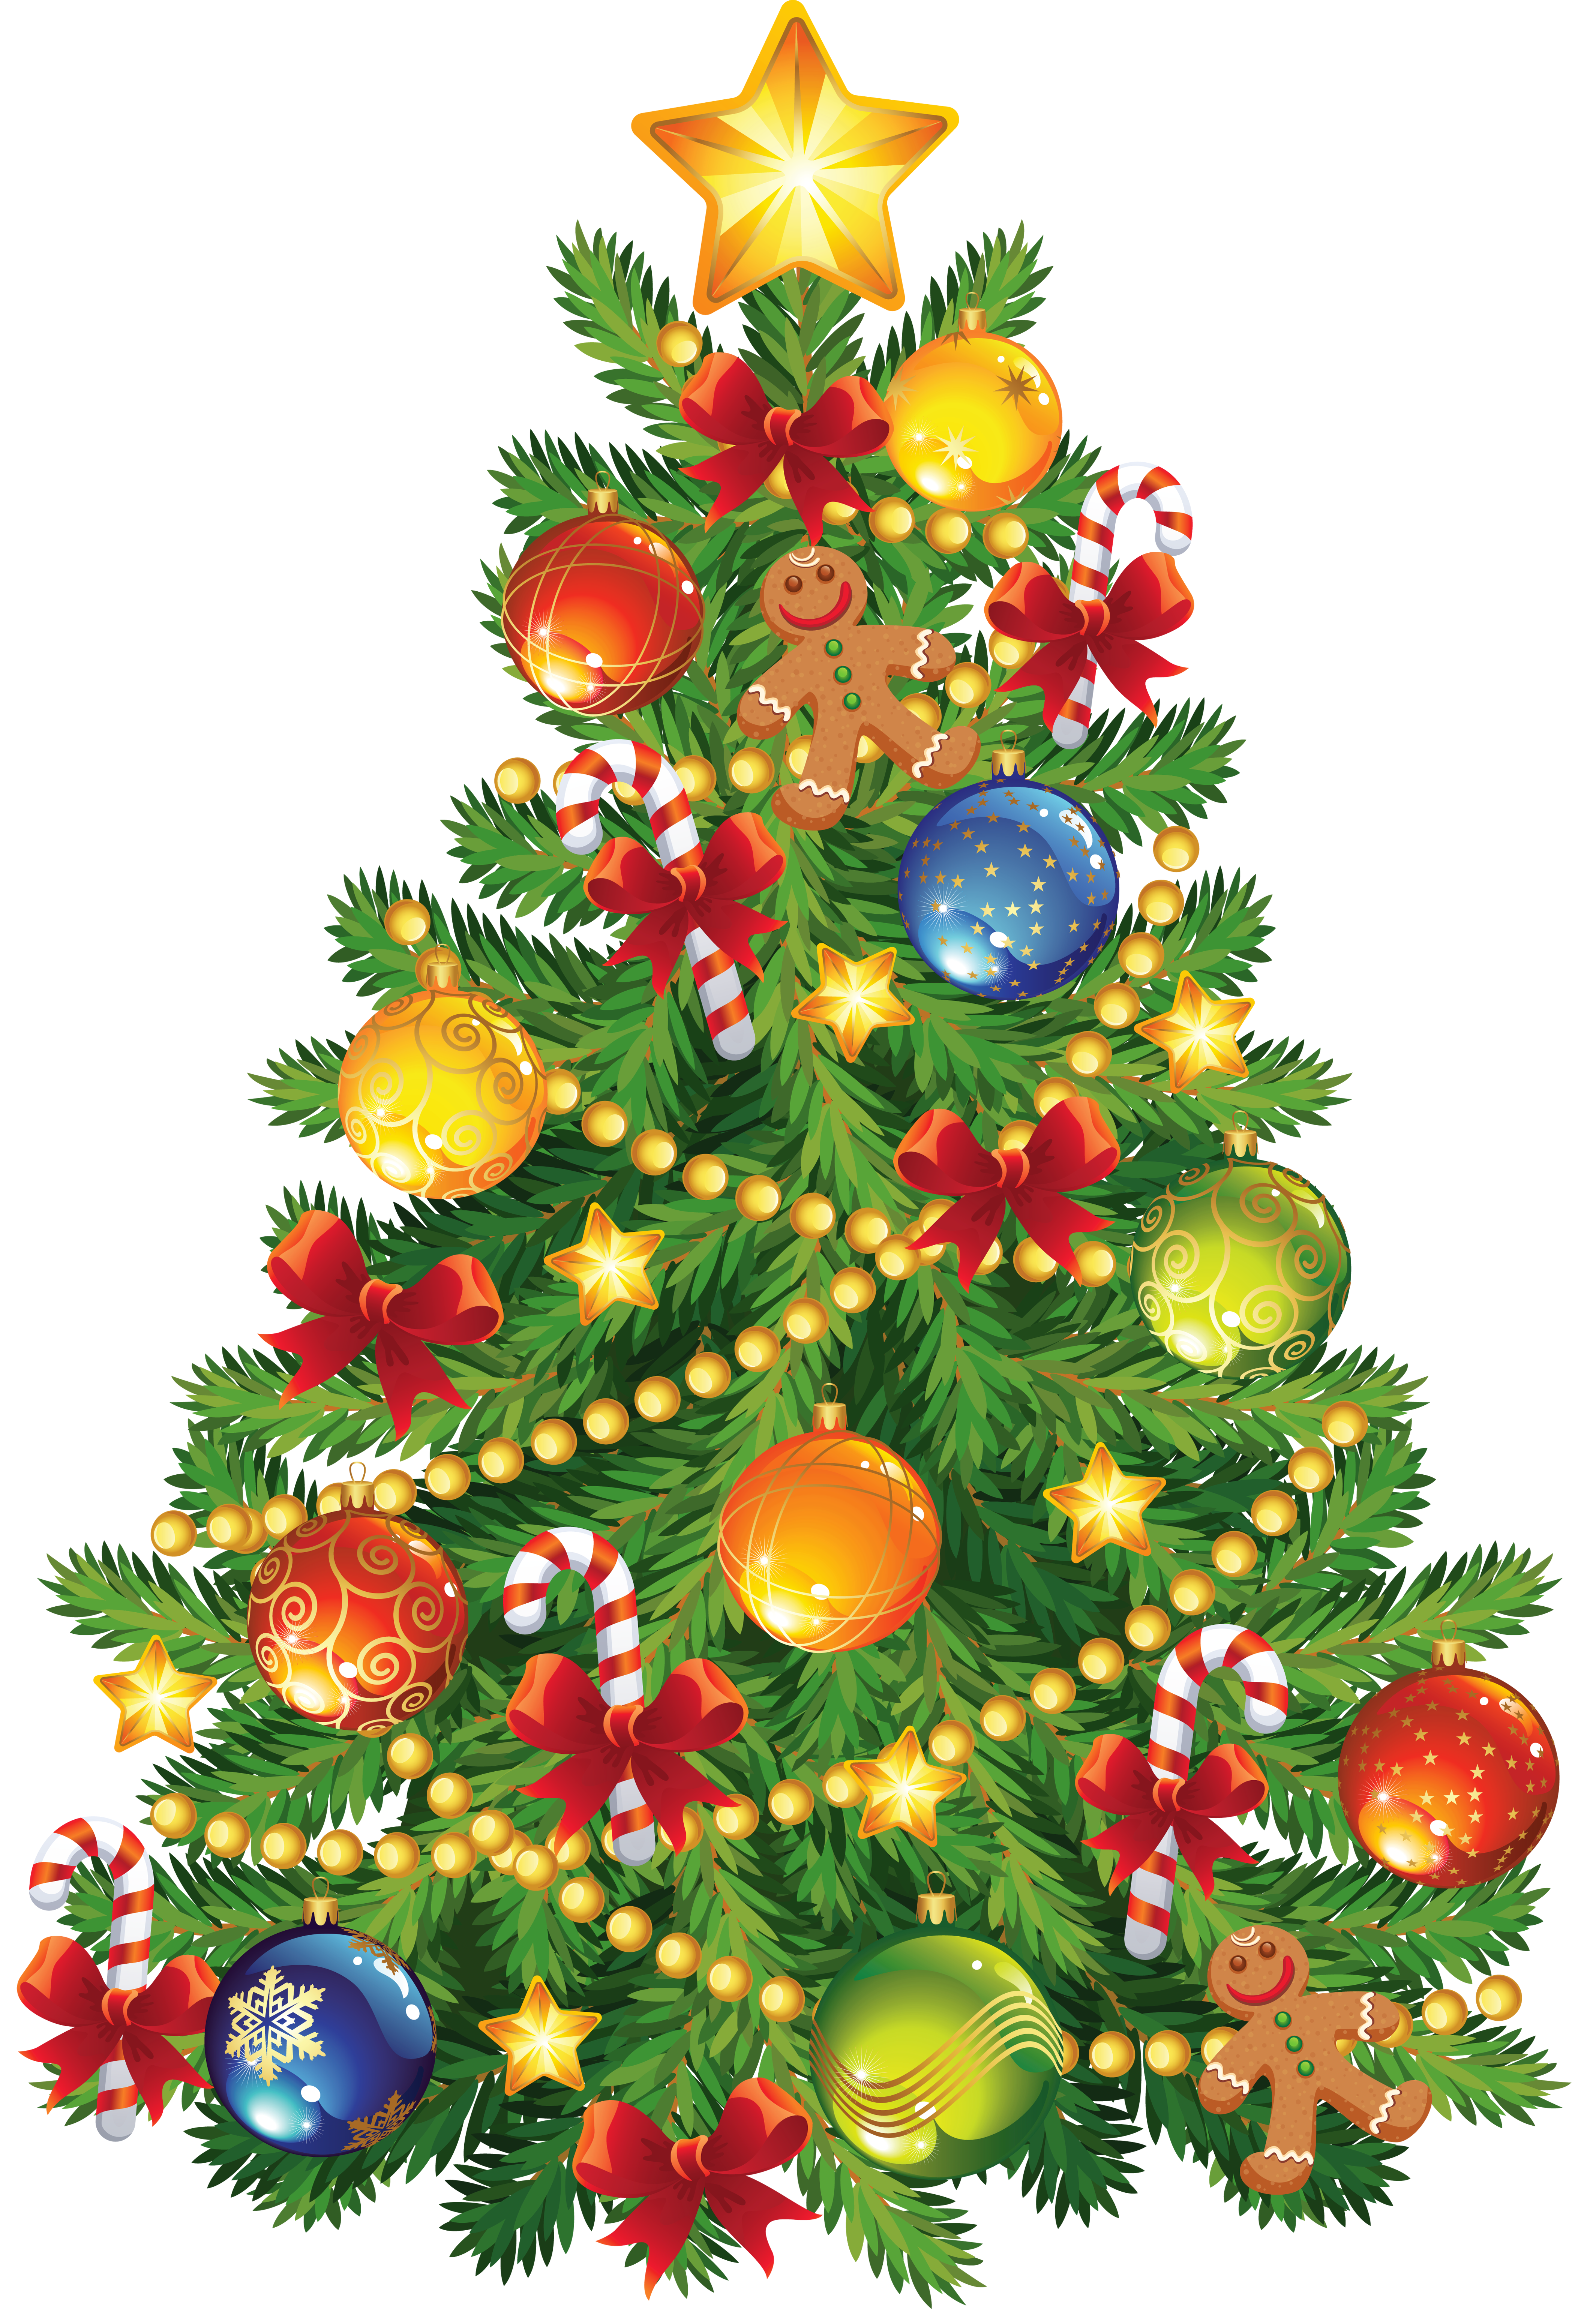 Ornament clipart christmas tree ornament. Large transparent with gingerbread